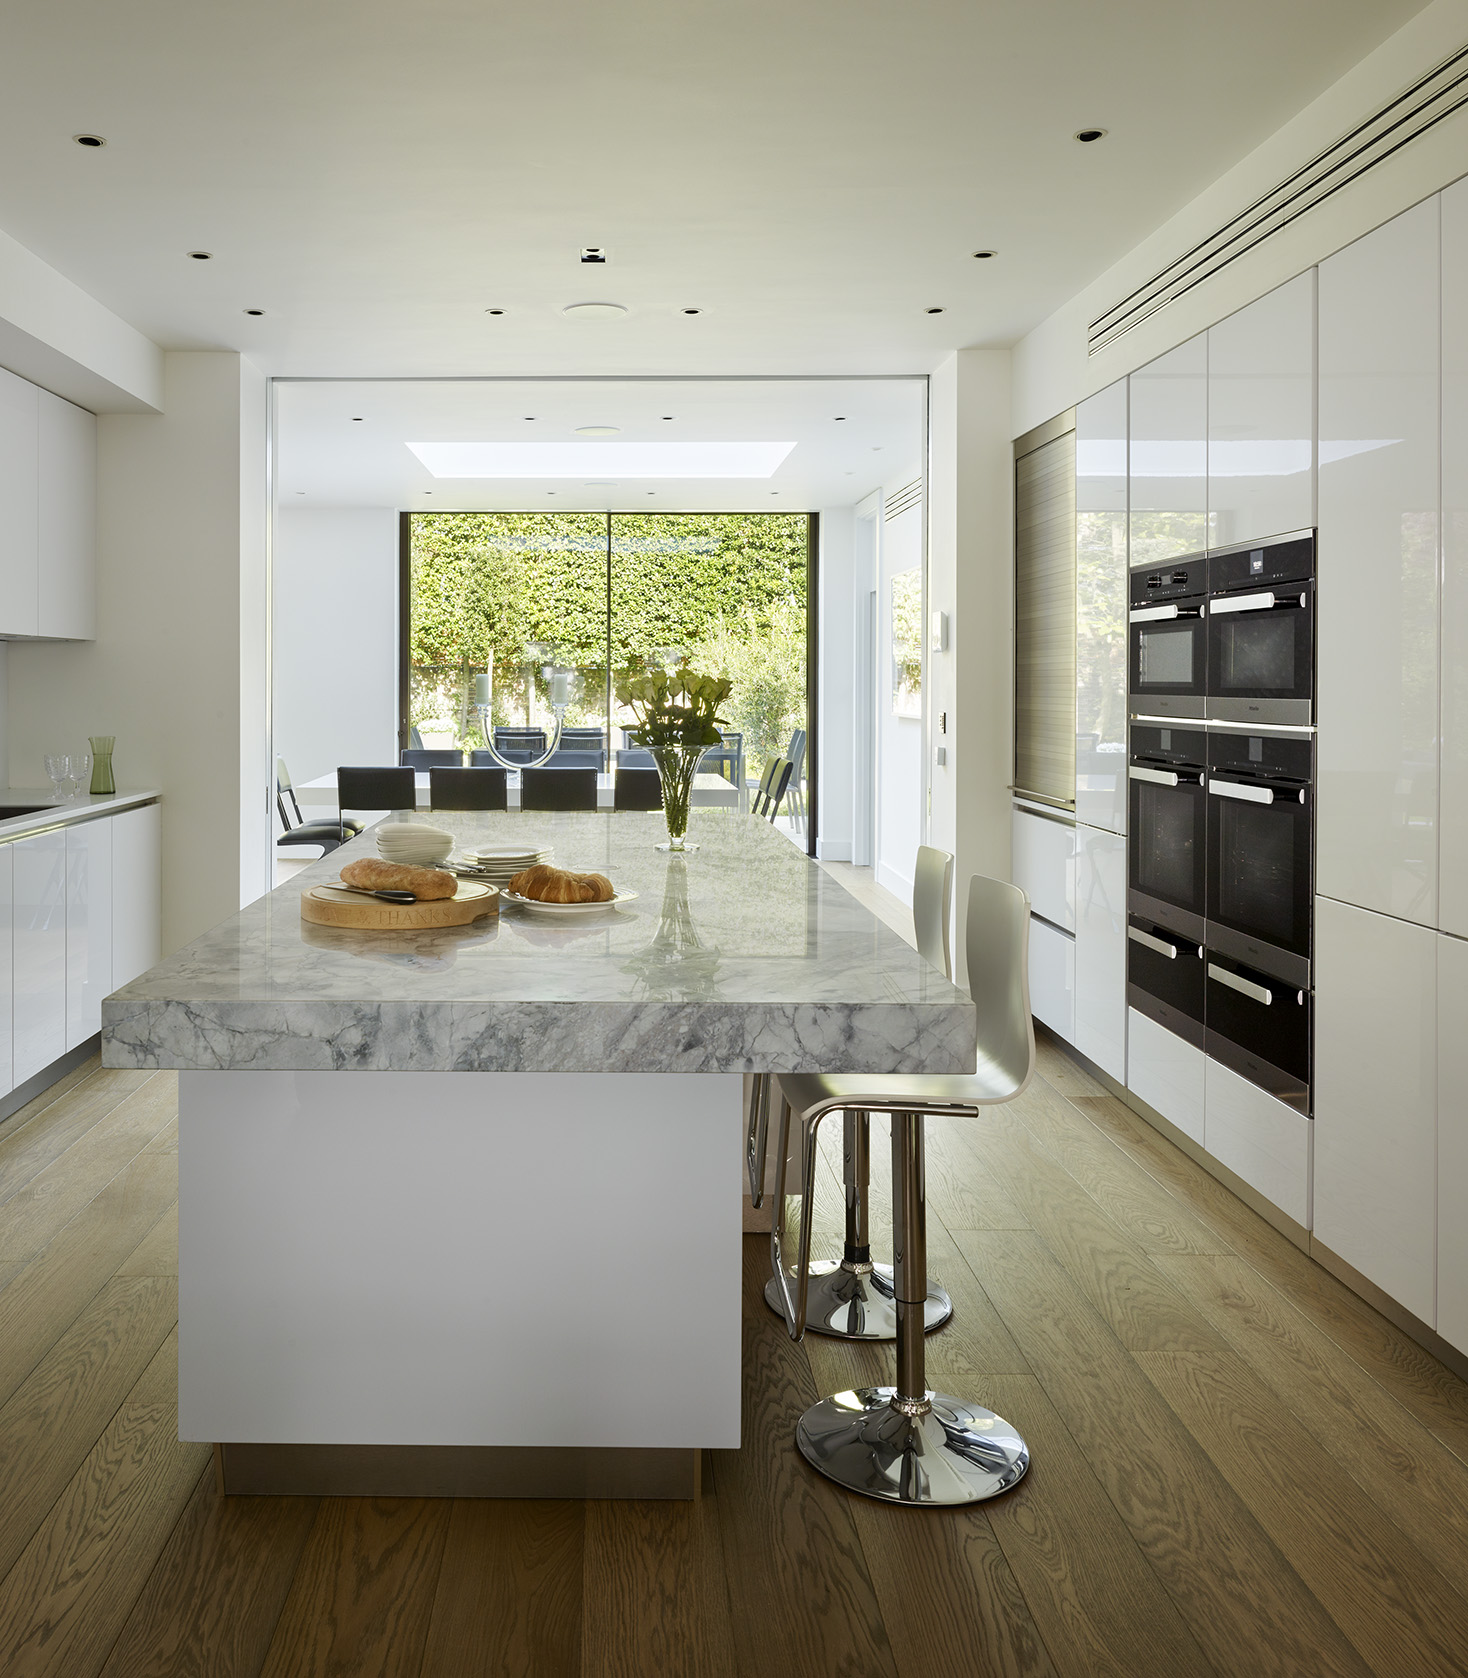 Miele Neil Lerner Kitchen Case Study 1